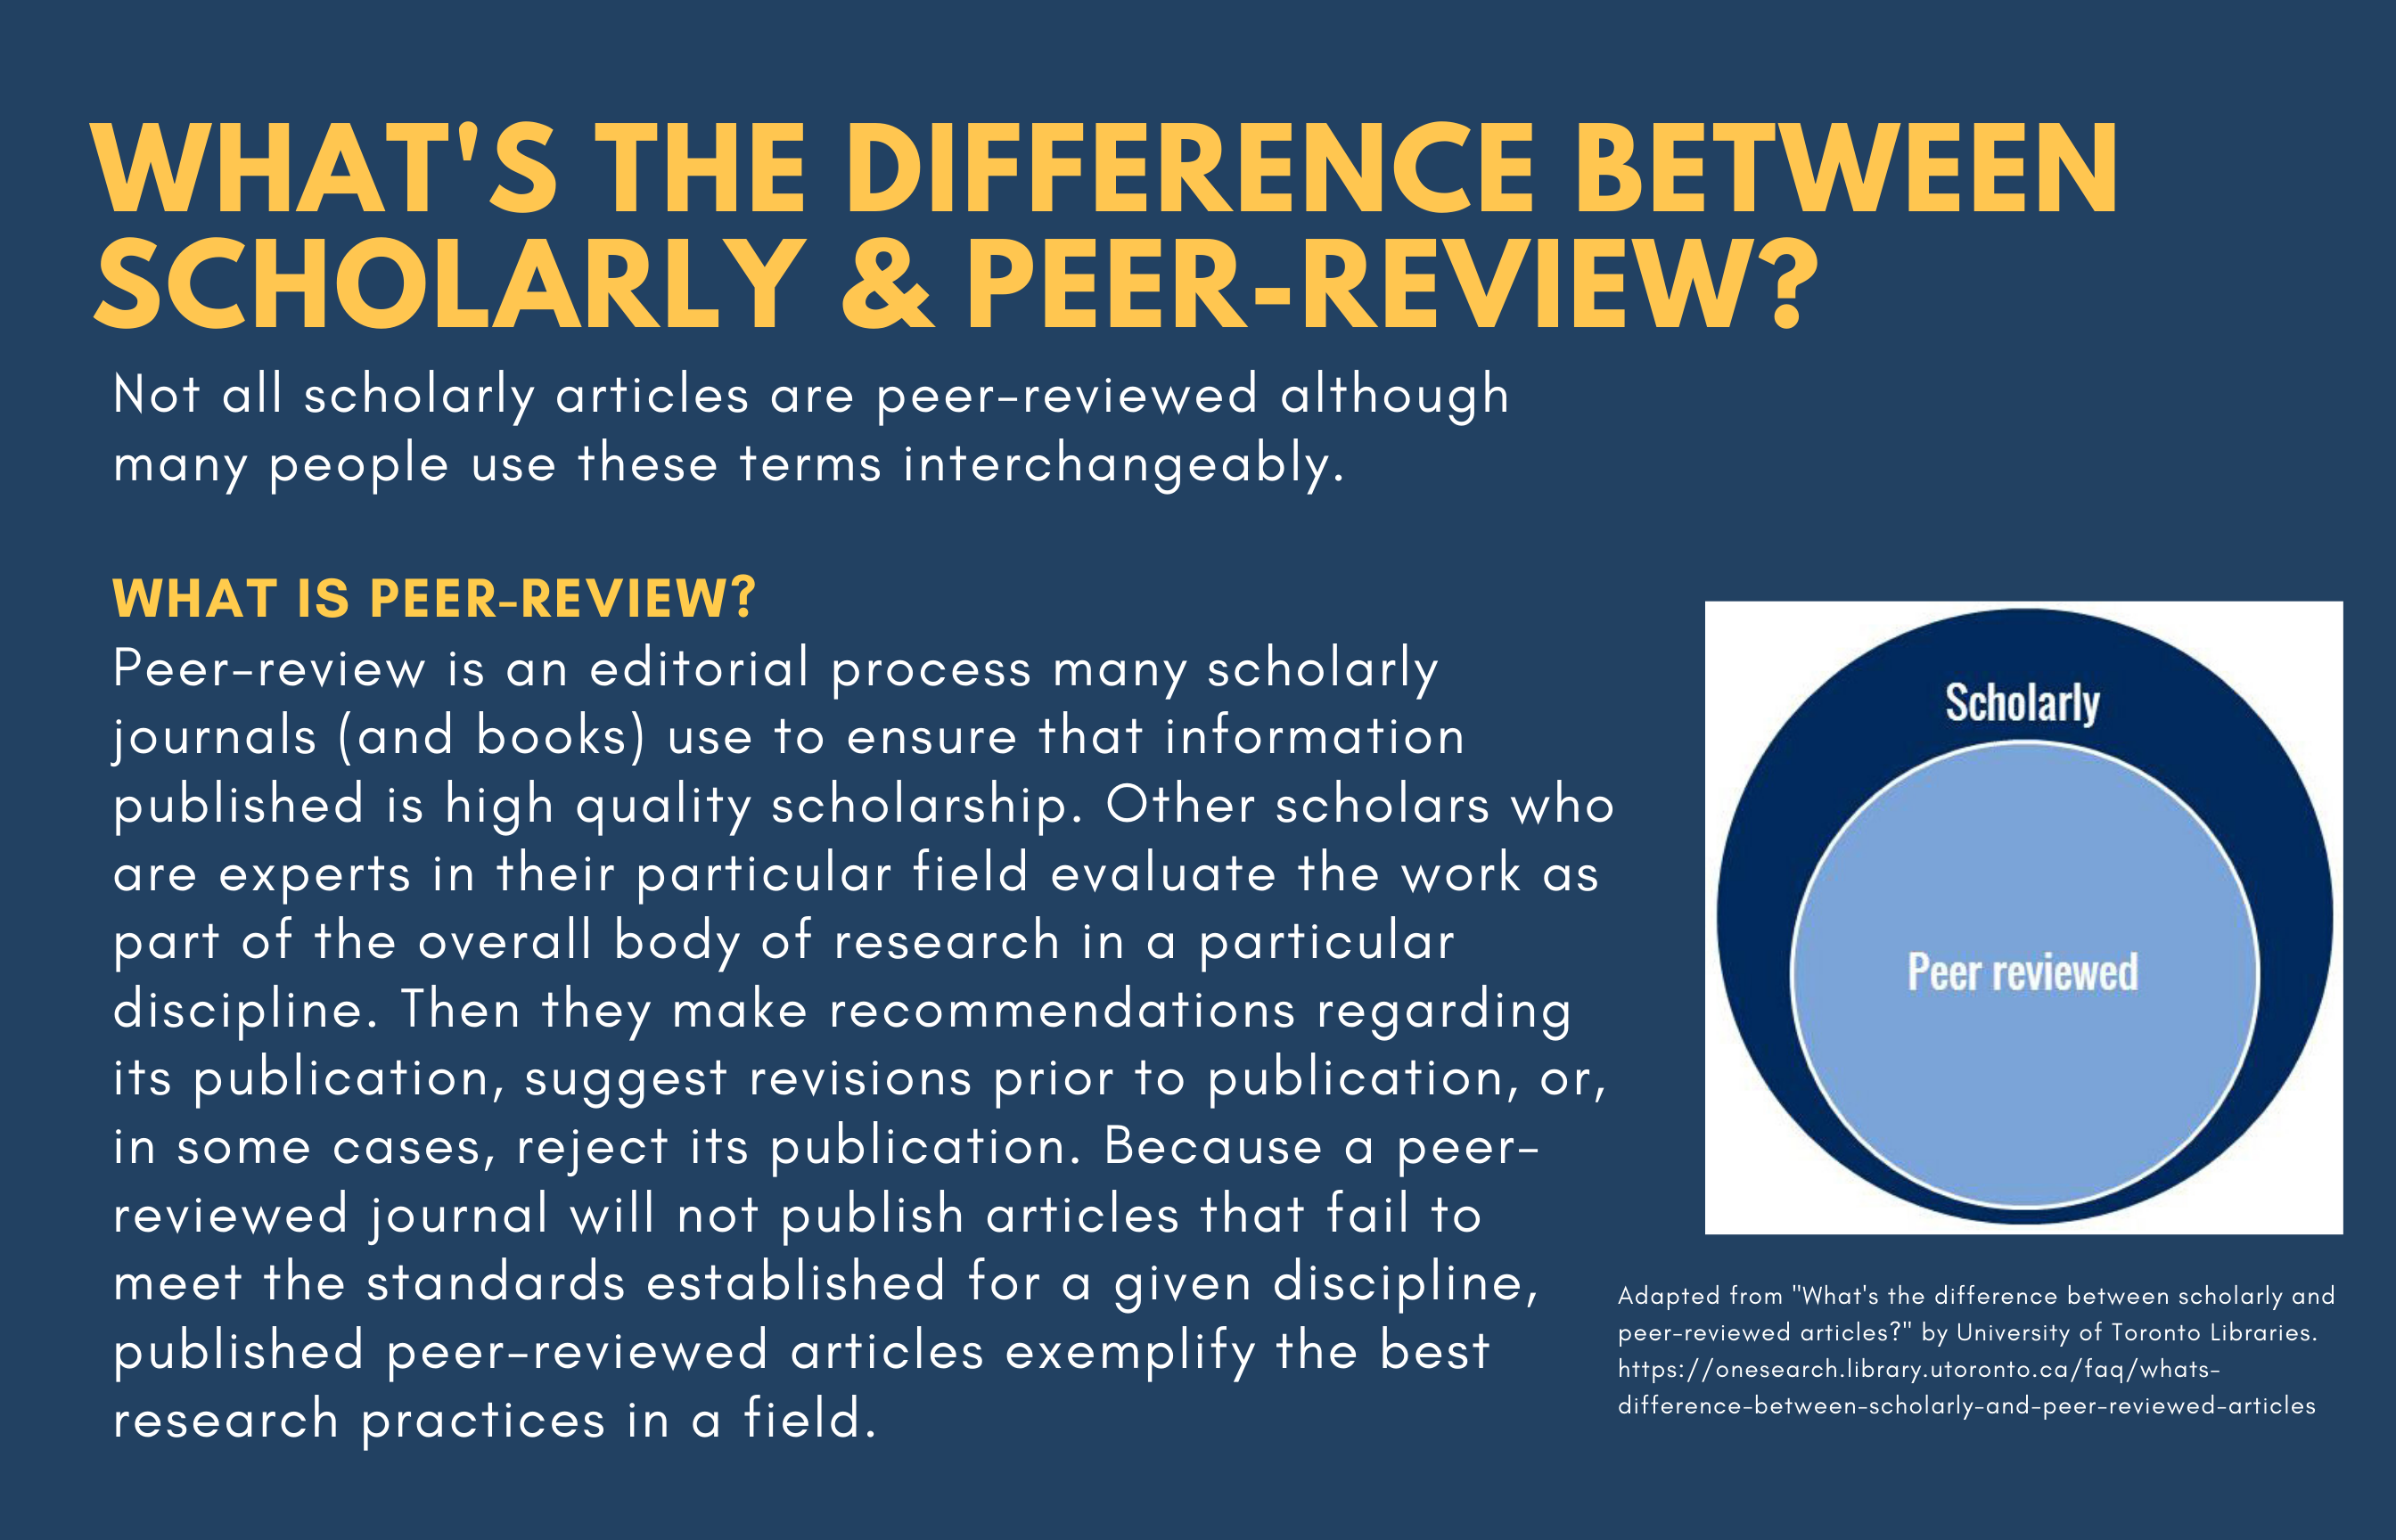 What's the difference between scholarly and peer-review? Not all scholarly articles are peer-review although many people use these terms interchangeably. What is peer-review? Peer review is an editorial process many scholarly journals (and books) use to ensure that the information published is high quality scholarship. Other scholars who are experts in their particular field evaluate the work as part of the overall body of research in a particular discipline. Then they make recommendations regarding its publication, suggest revisions prior to publication, or, in some cases, reject its publication. Because a peer-reviewed journal will not publish articles that fail to meet the standards established for a given discipline, published peer-reviewed articles exemplify the best research practices in a field.